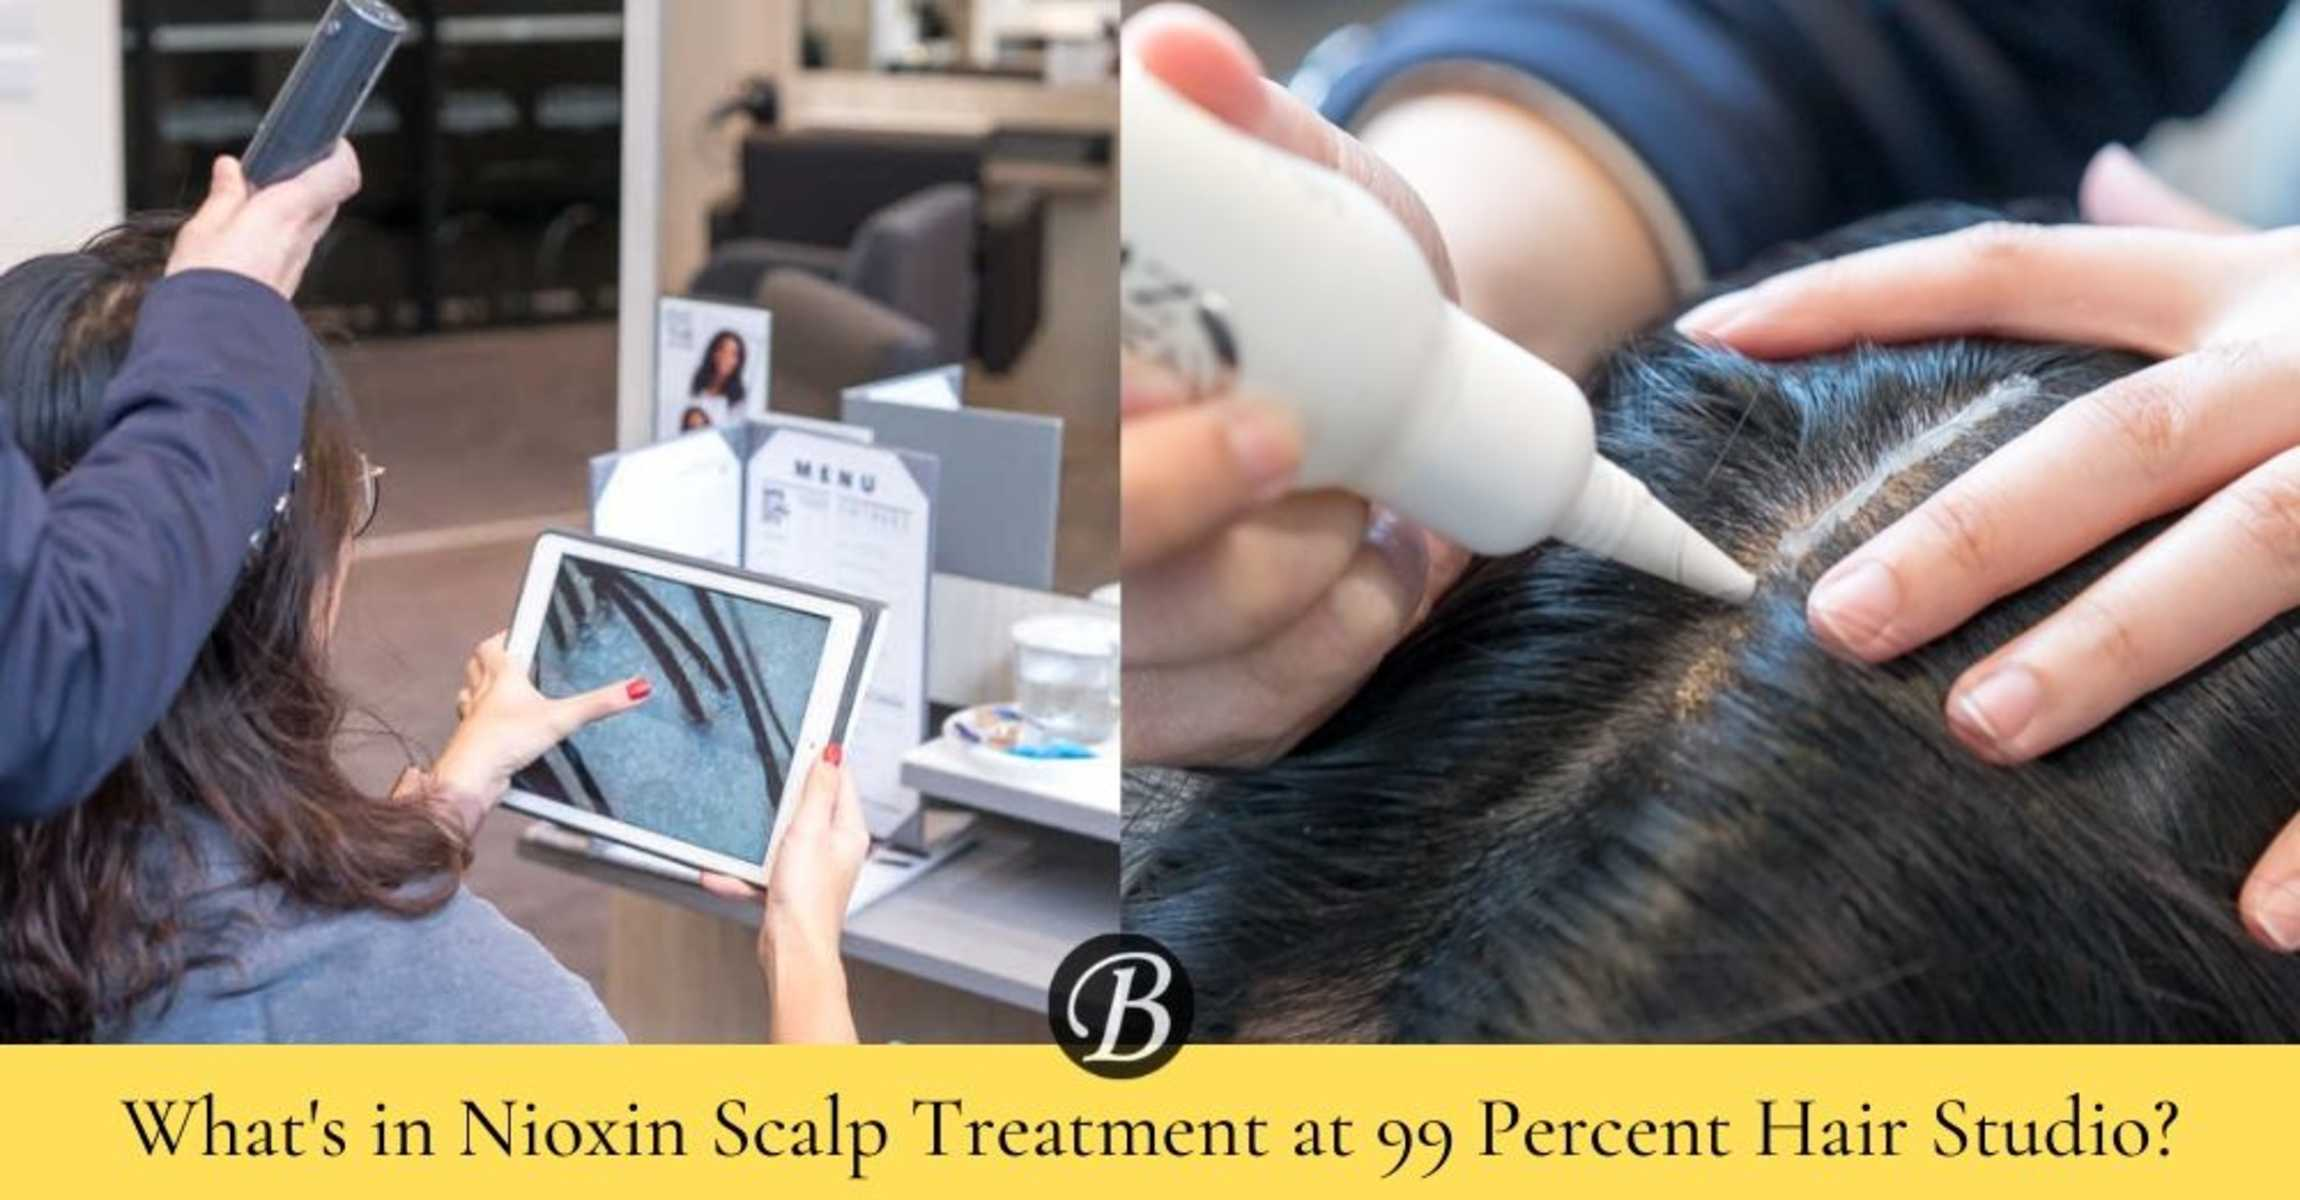 In Search of Singapore's Best Scalp Treatment: 99 Percent Hair Studio Introduces a New Nioxin Scalp Treatment